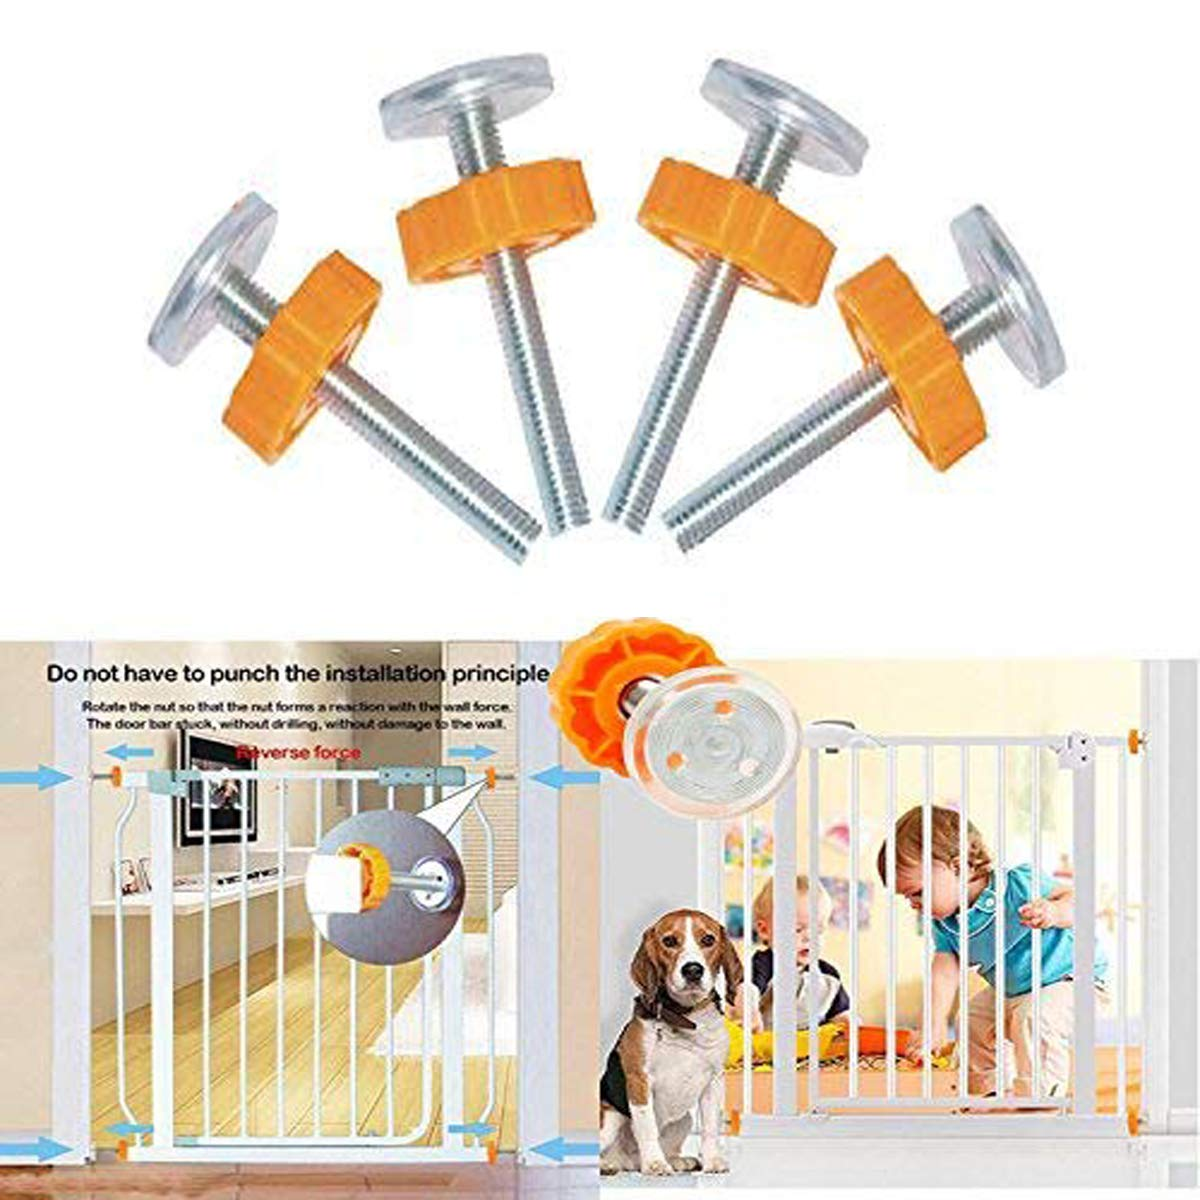 Pressure Mounted Baby Gates Threaded Spindle Rods,4Pcs Spindle Screw Mounted Bolts Kit for Stair Gates Dog Gate